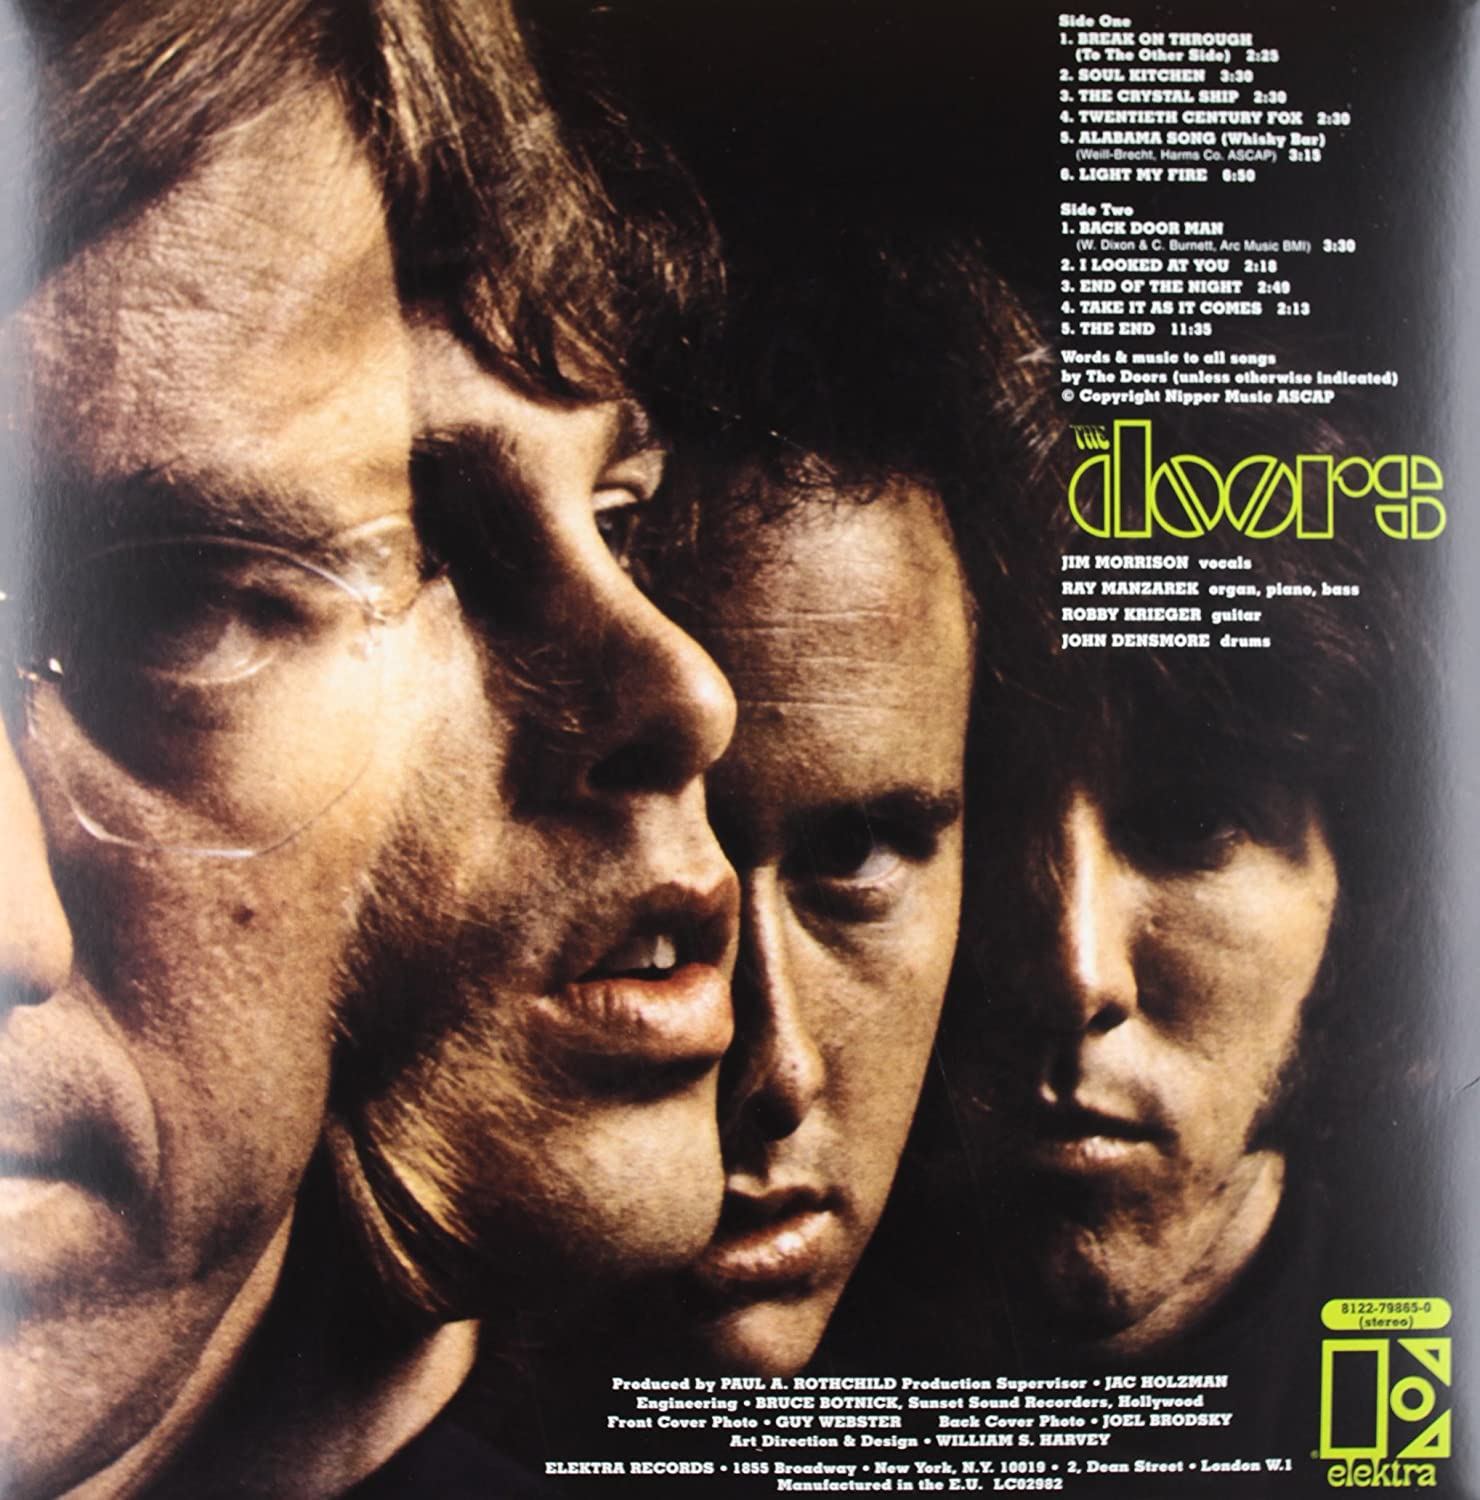 & The Doors - The Doors (180 Gram Vinyl) - Amazon.com Music